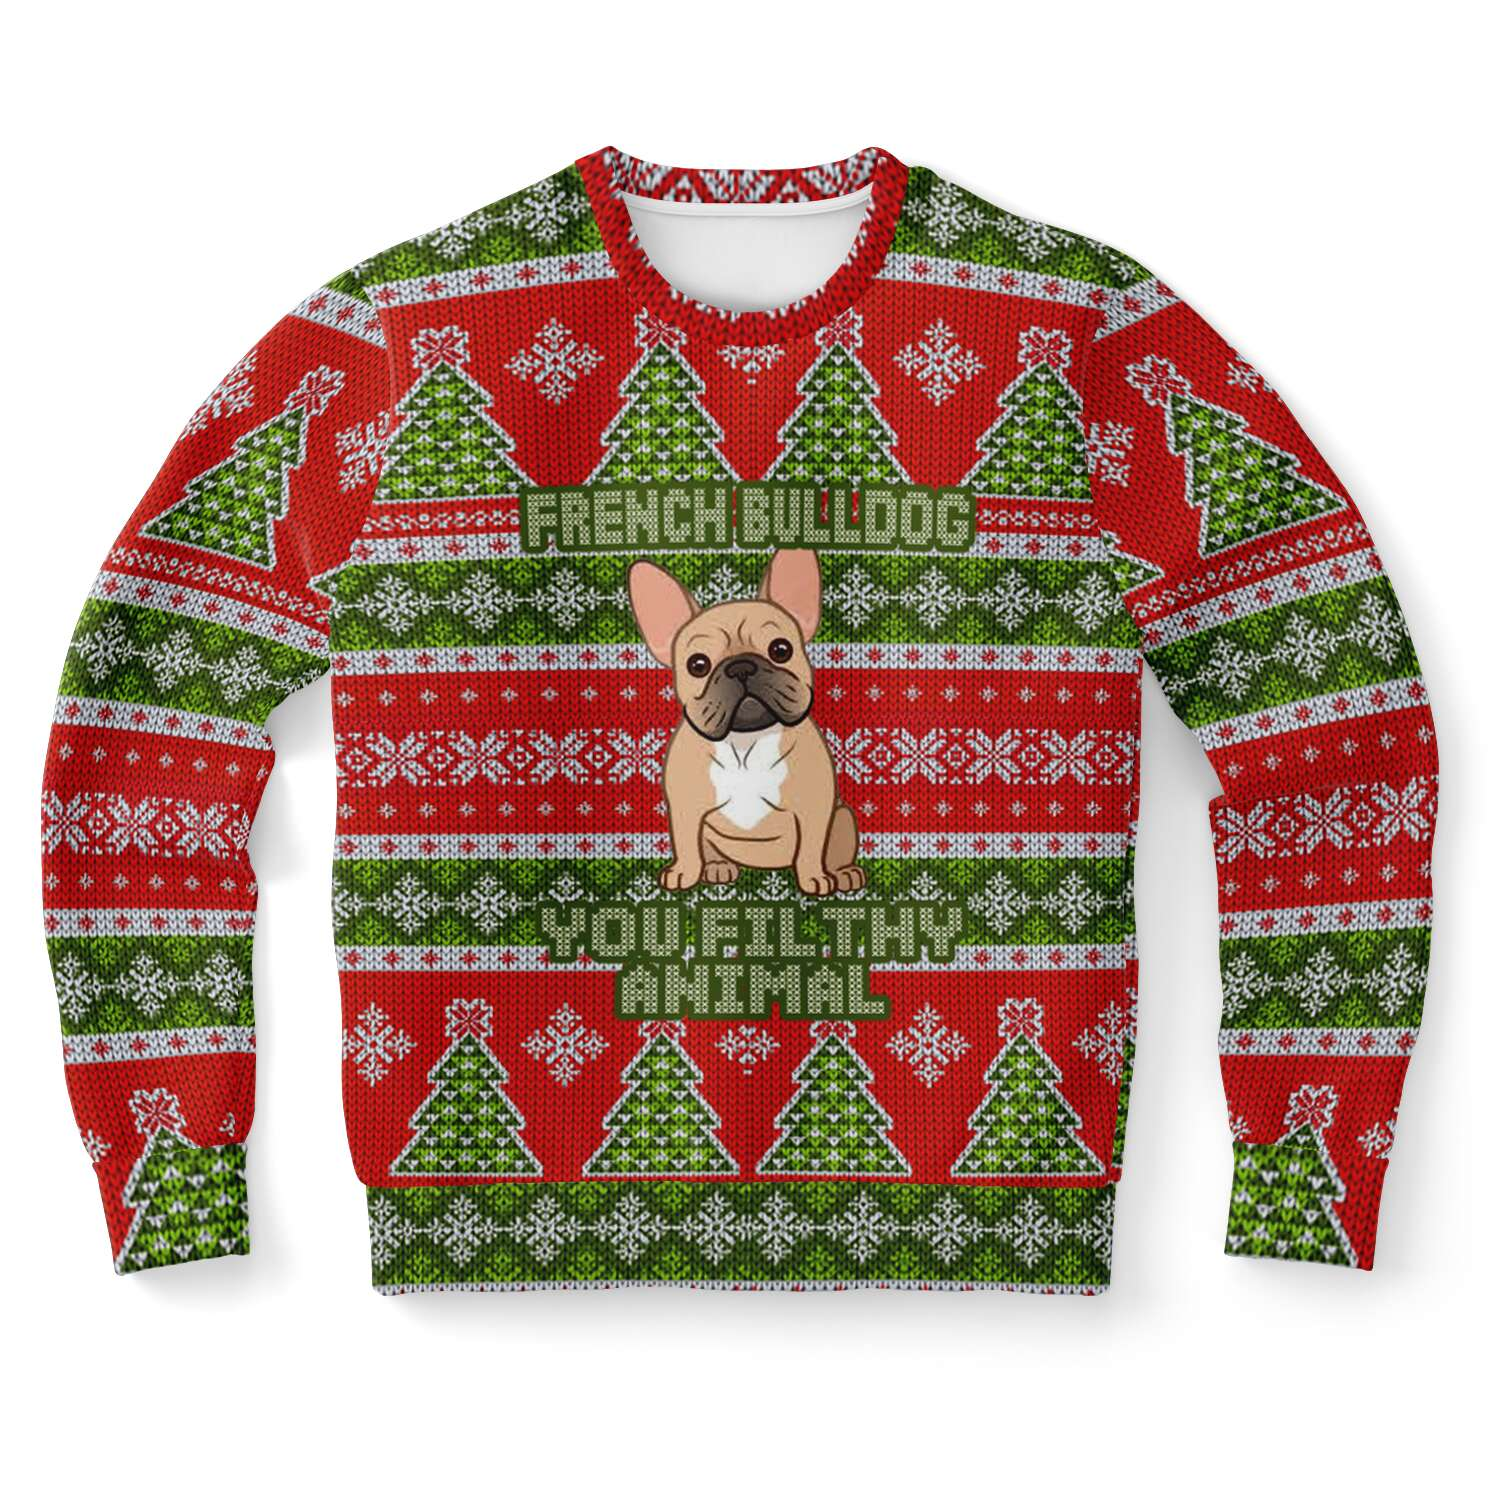 Lucy - French Bulldog Sweater - Frenchie Bulldog Shop